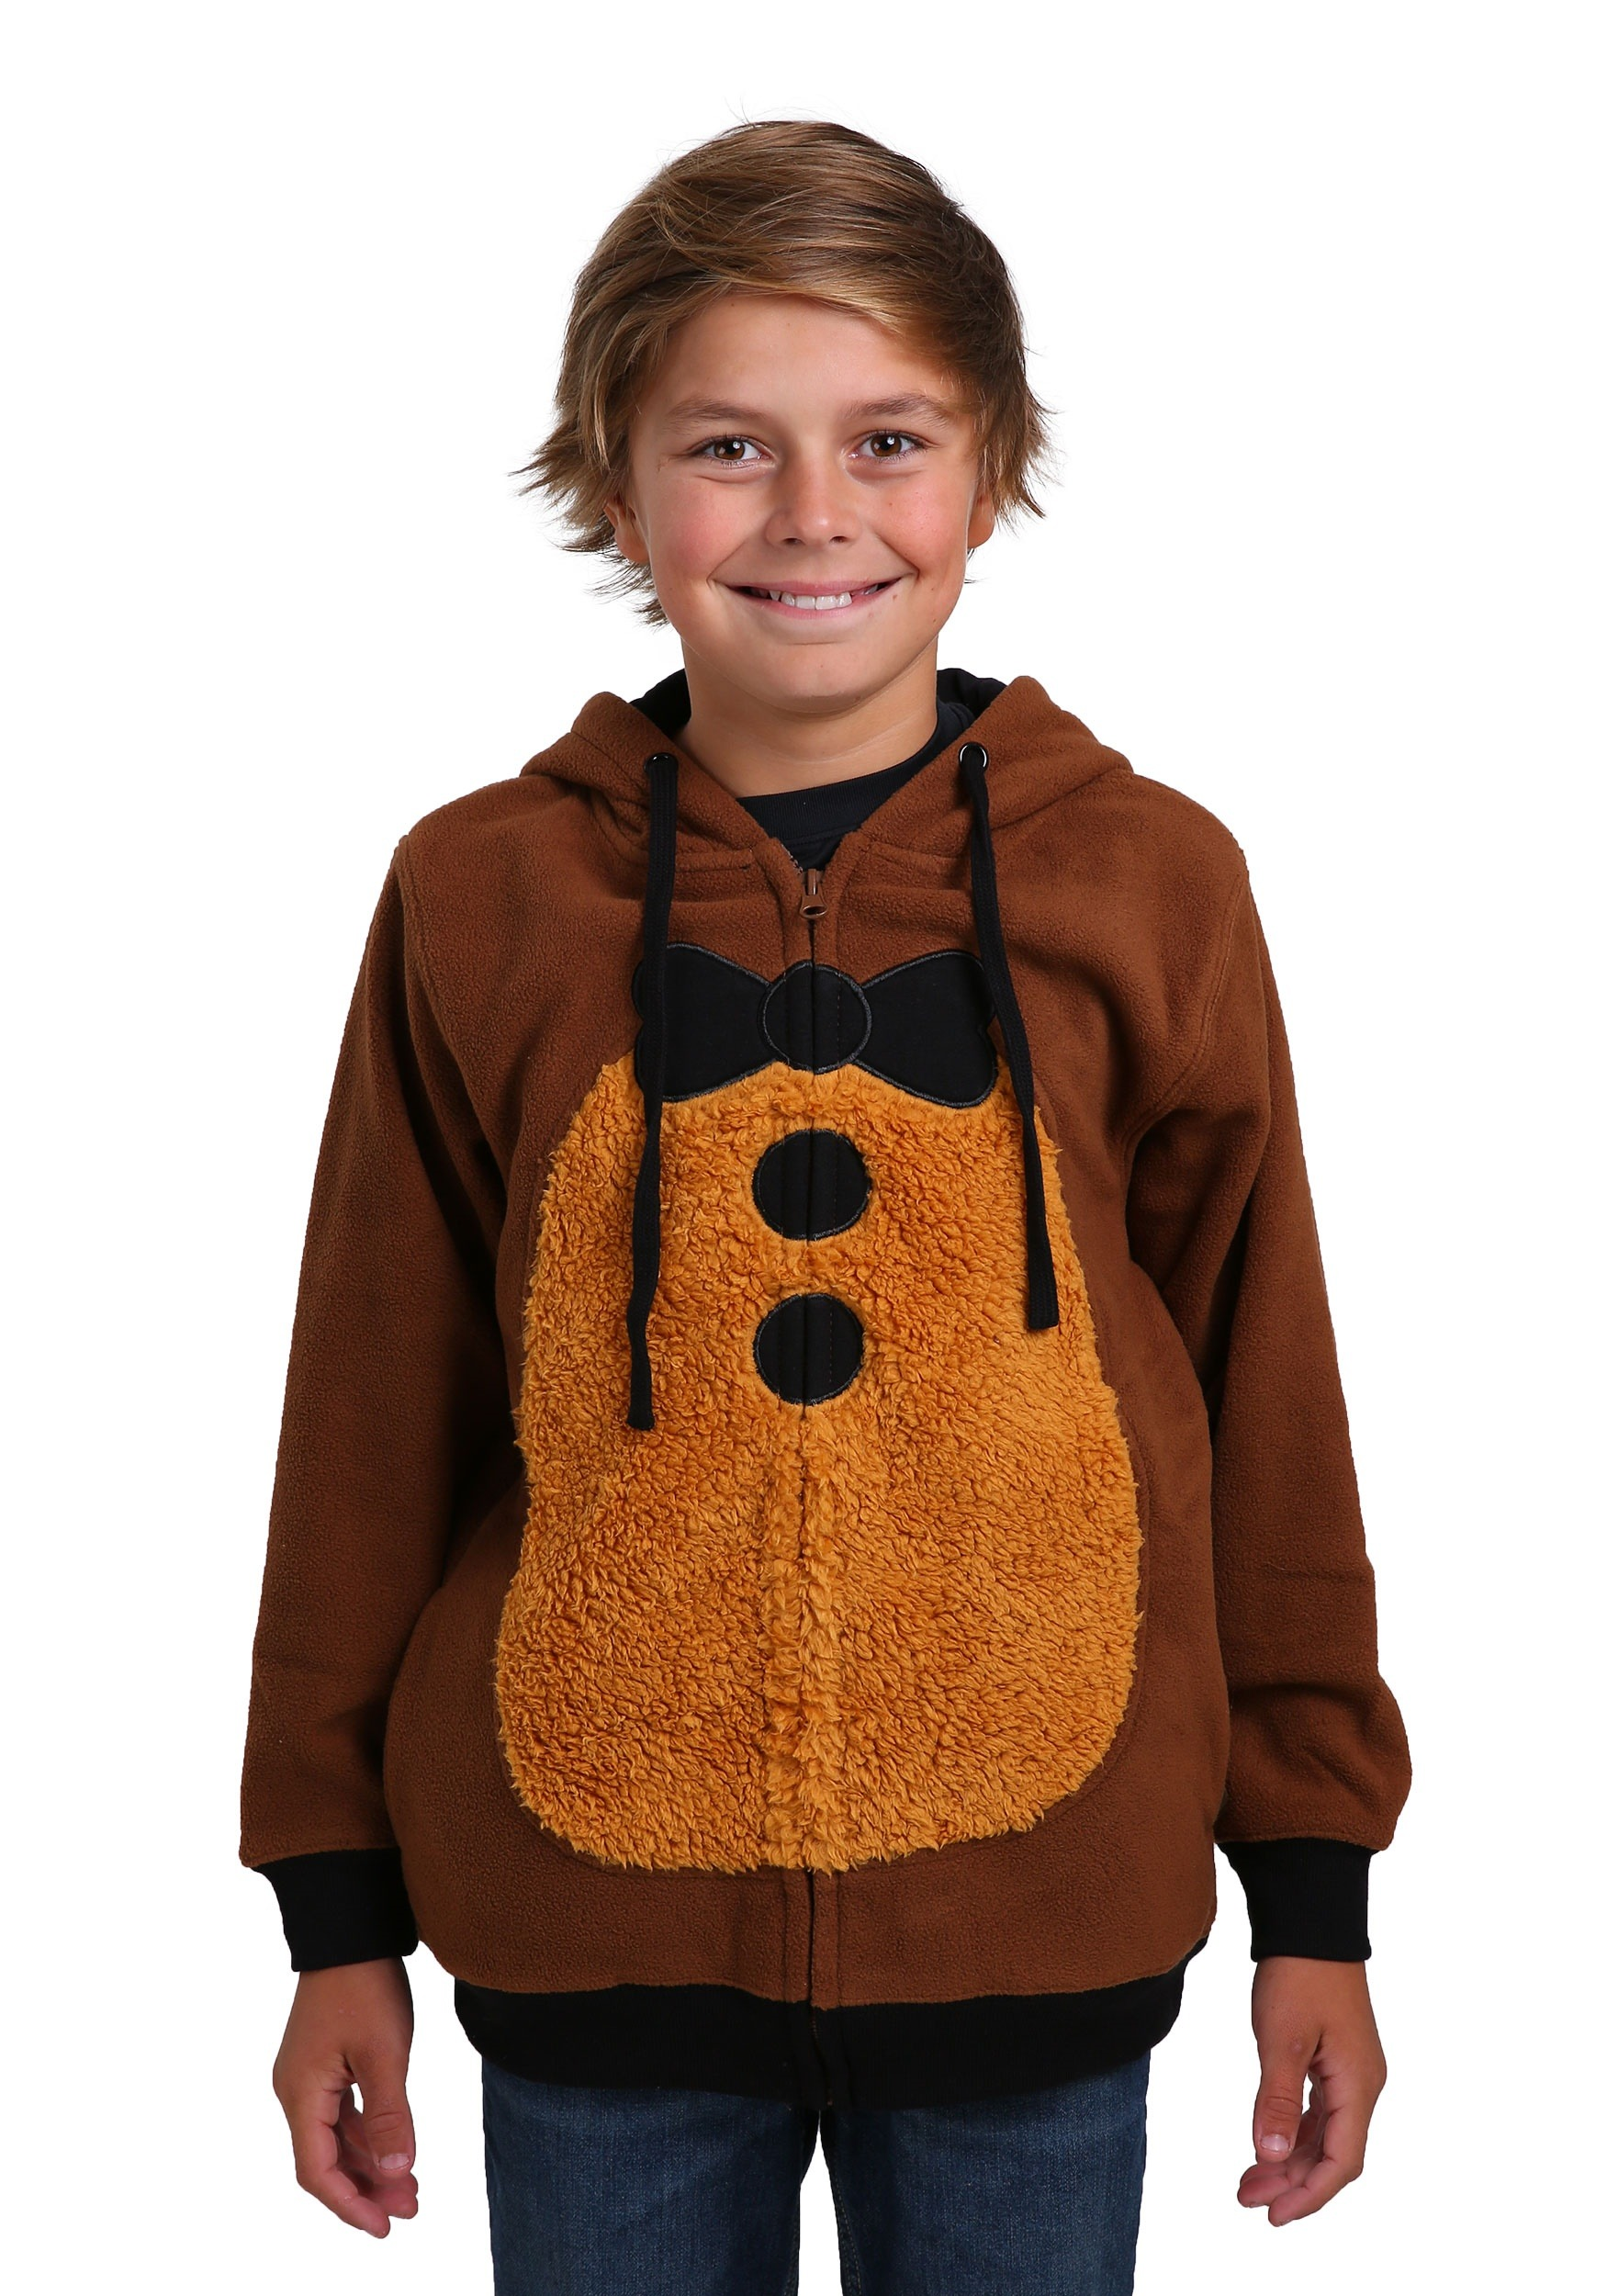 Five nights at freddys costume hoodie for boys